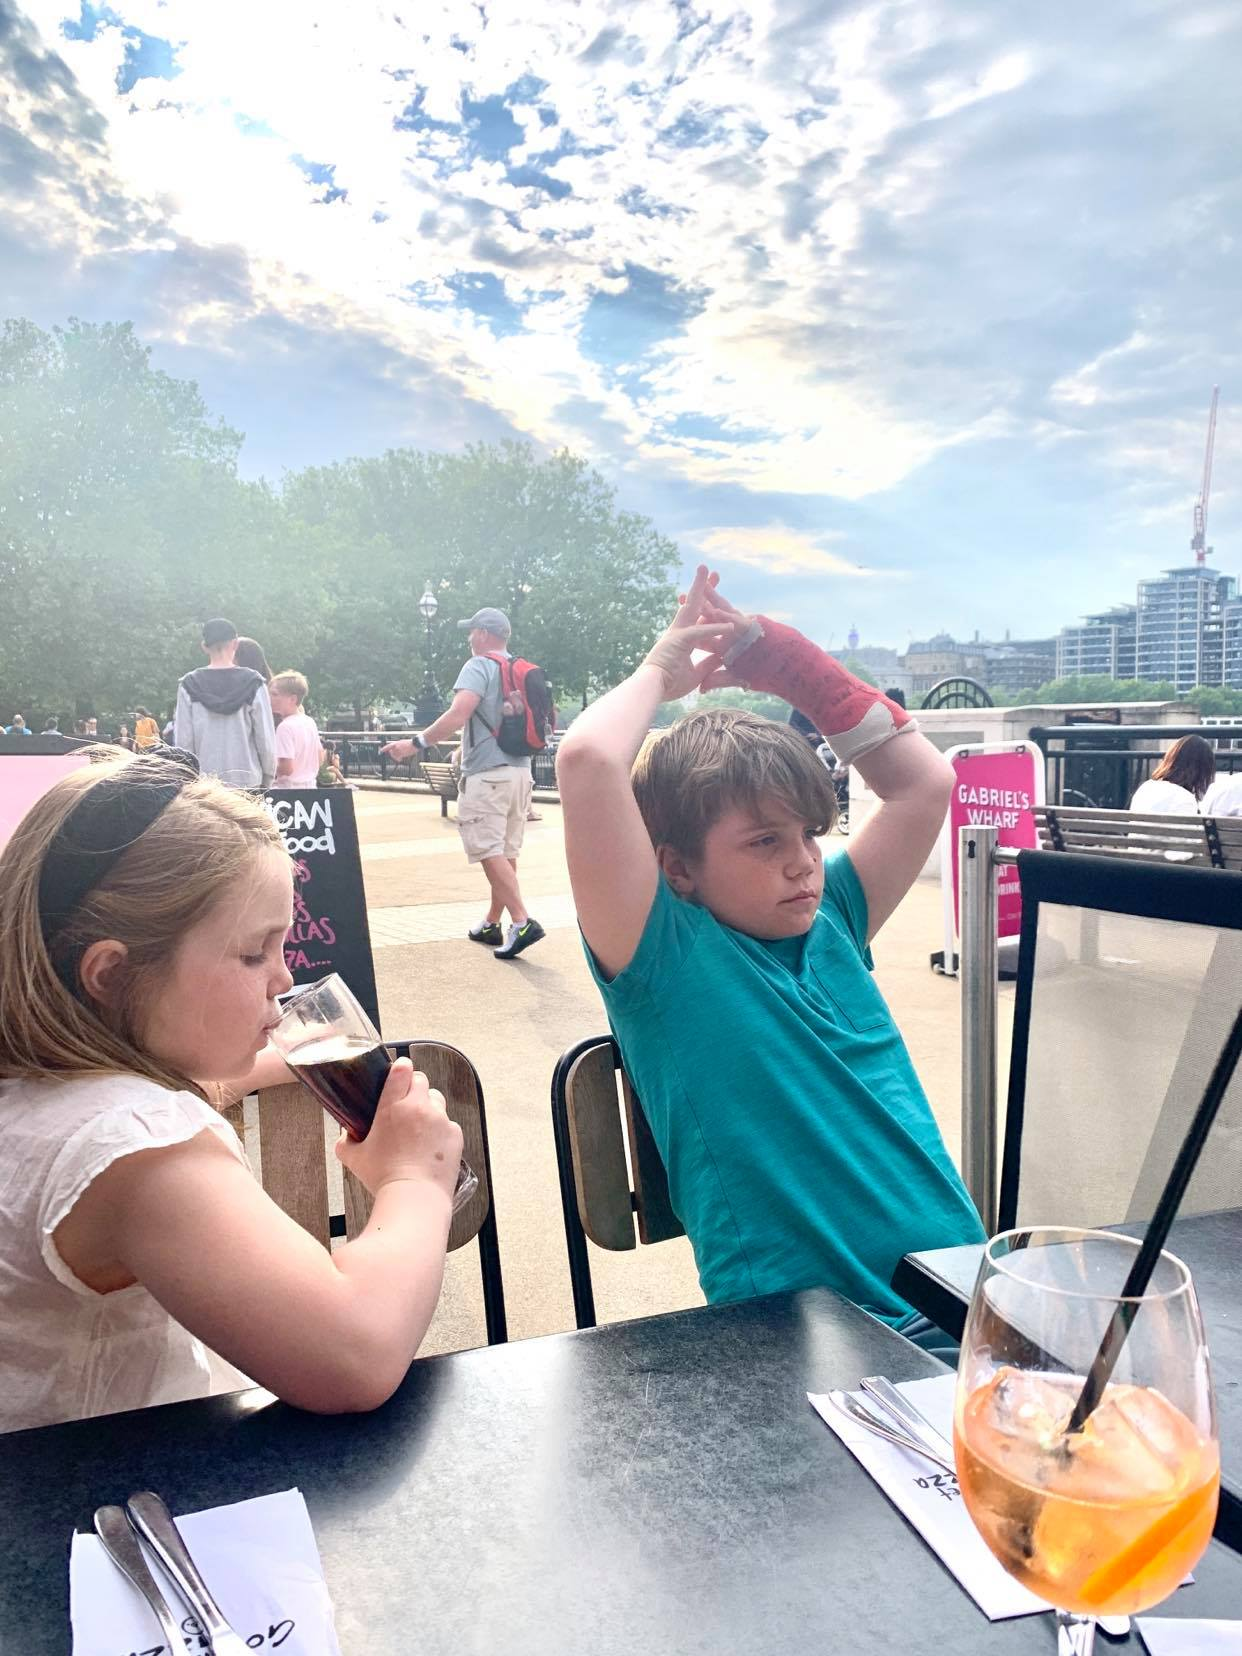 36 hours in london with kids, eating out at the gourmet pizza company, south bank london